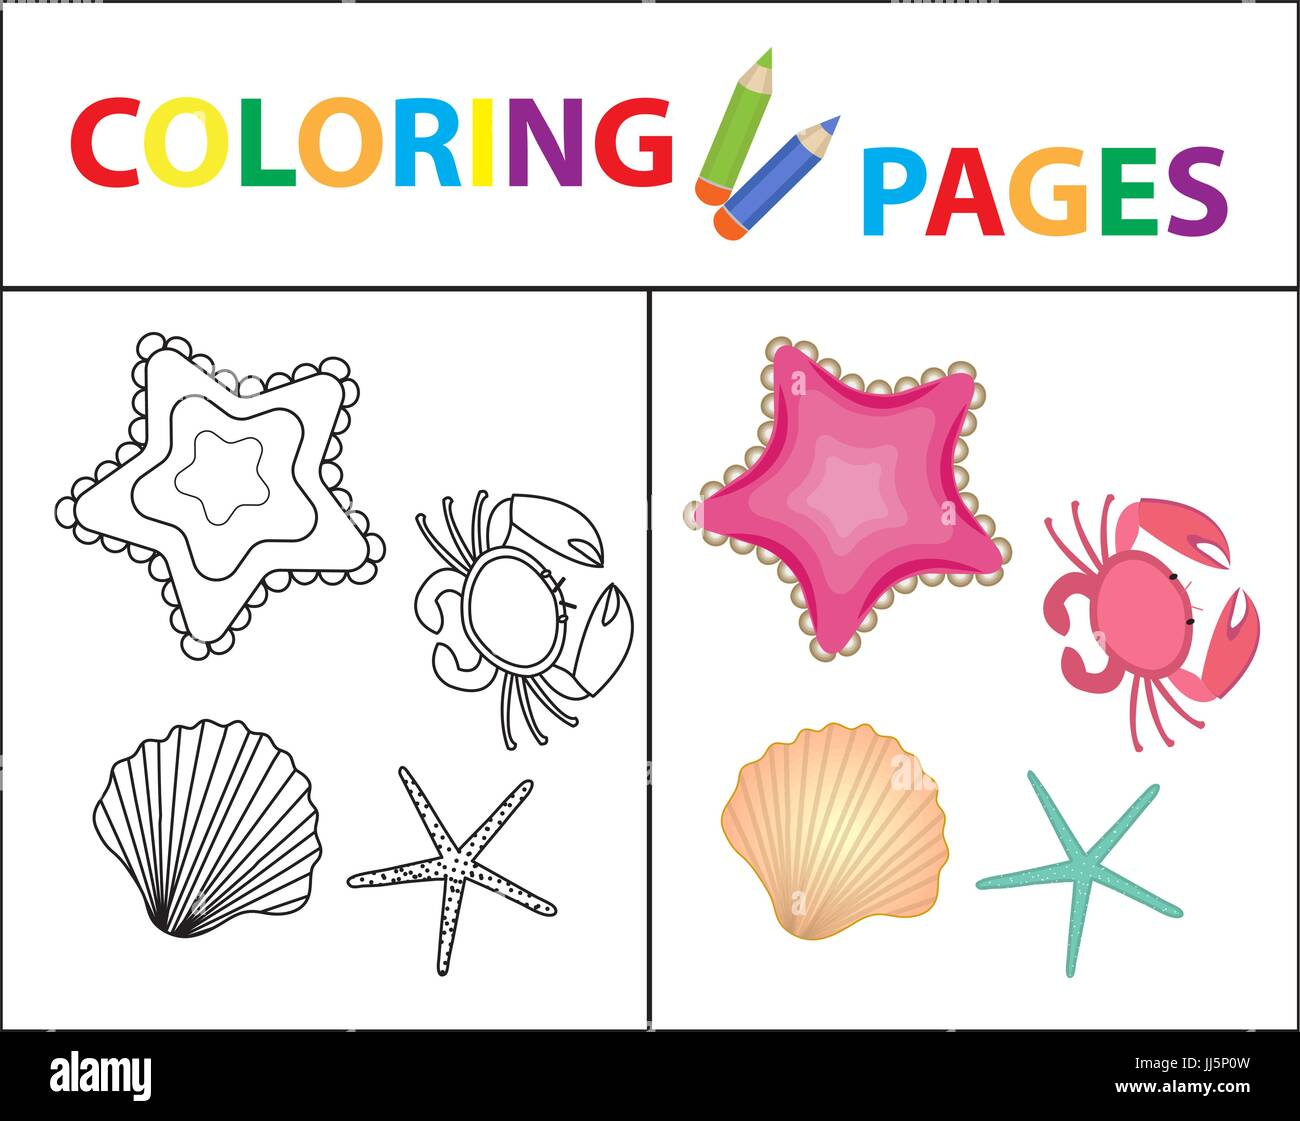 Coloring Book Page Sea Set Star Shell Crab Pearl Sketch Outline And Color Version For Kids Childrens Education Vector Illustration